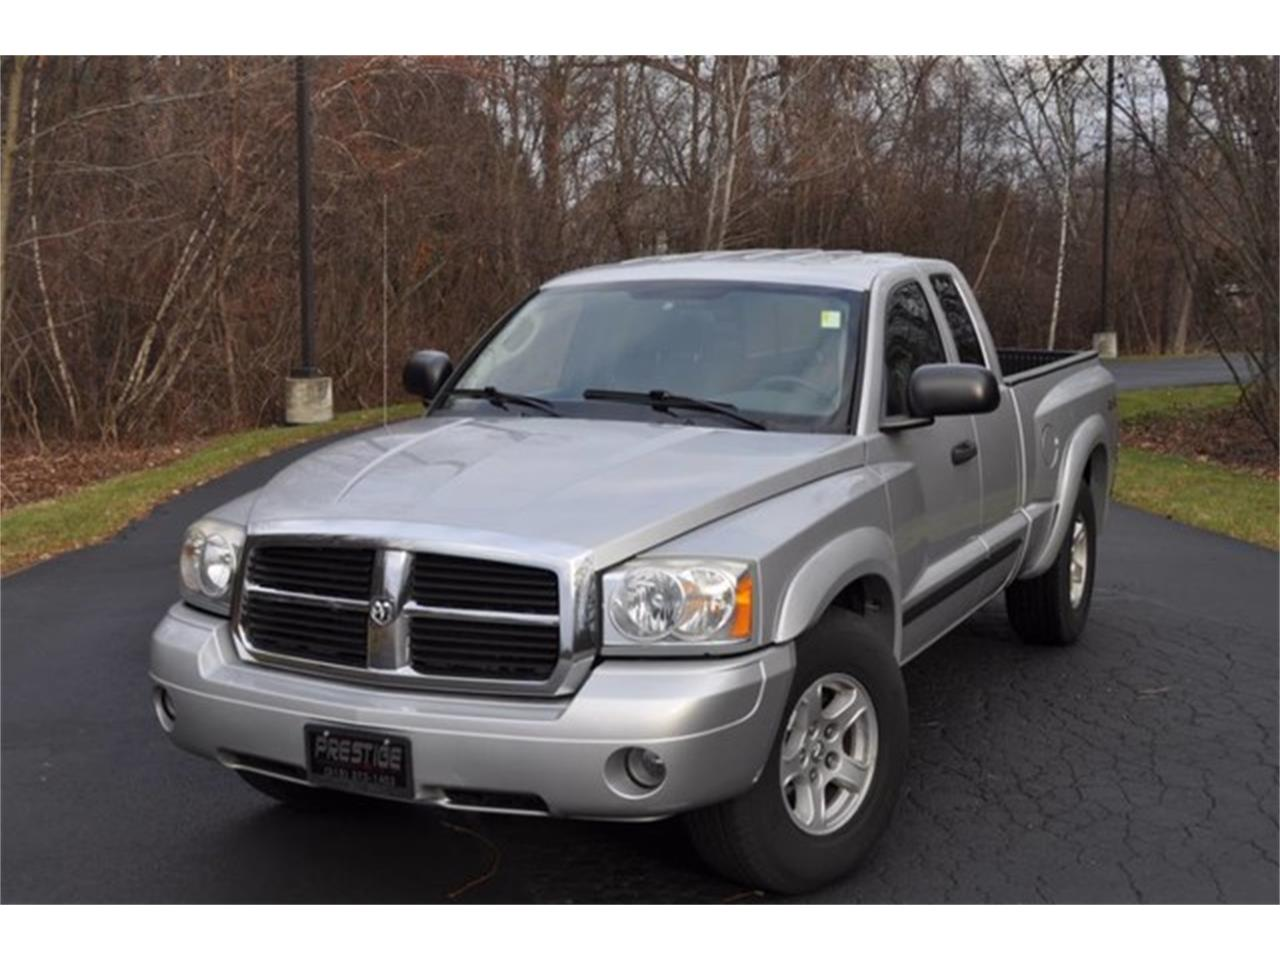 Large Picture of 2005 Dodge Dakota located in Clifton Park New York Auction Vehicle - MHA6